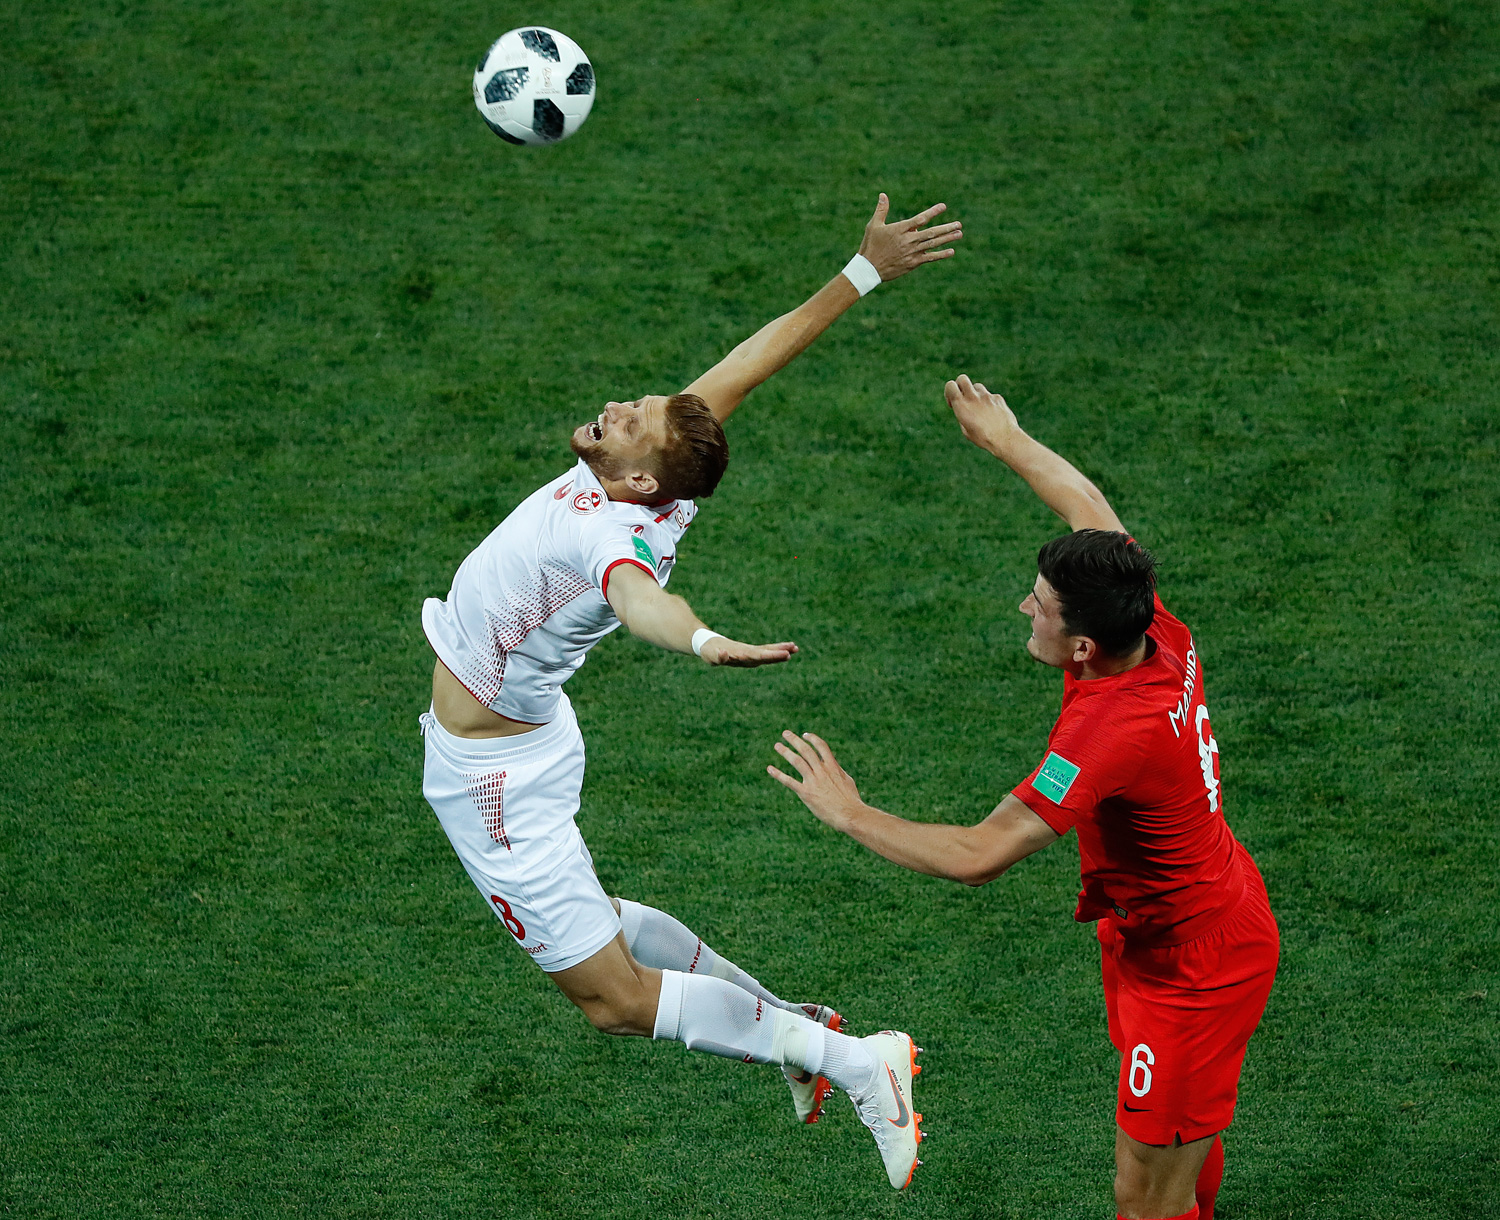 <div class='meta'><div class='origin-logo' data-origin='none'></div><span class='caption-text' data-credit='Rebecca Blackwell/AP Photo'>Tunisia's Rami Bedoui, rich. and England's Jordan Henderson challenge for the ball during the group G match between Tunisia and England</span></div>